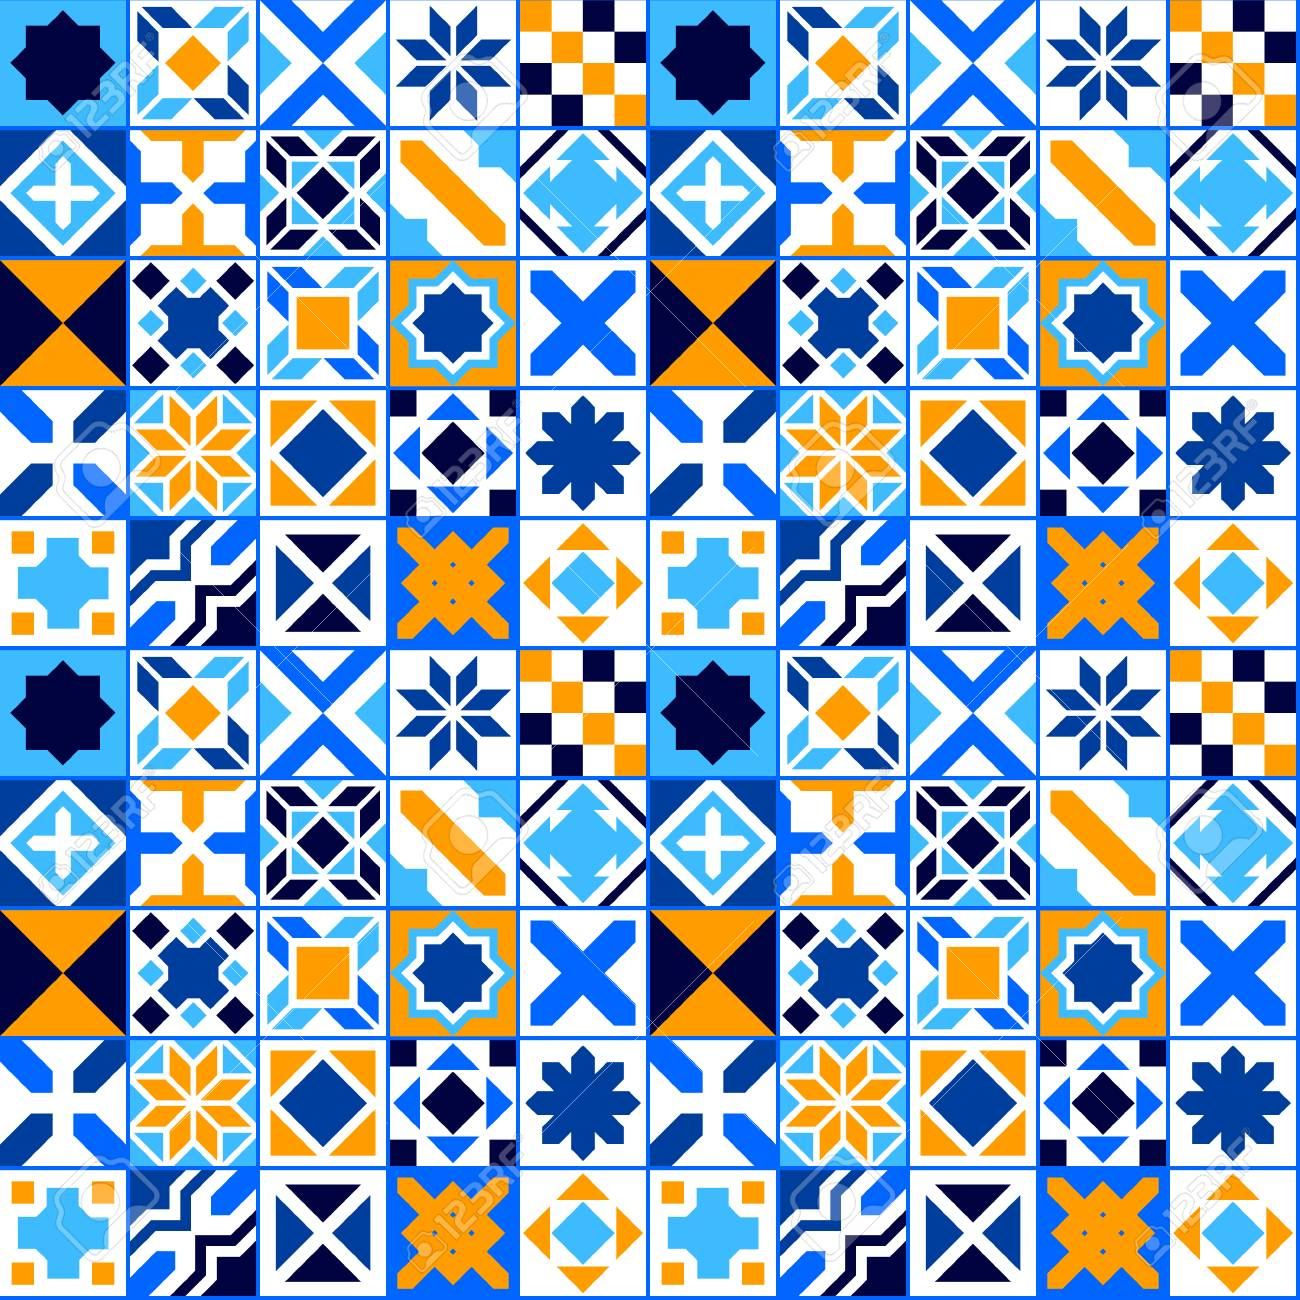 Colorful geometric tiles seamless pattern, vector background - 47596175